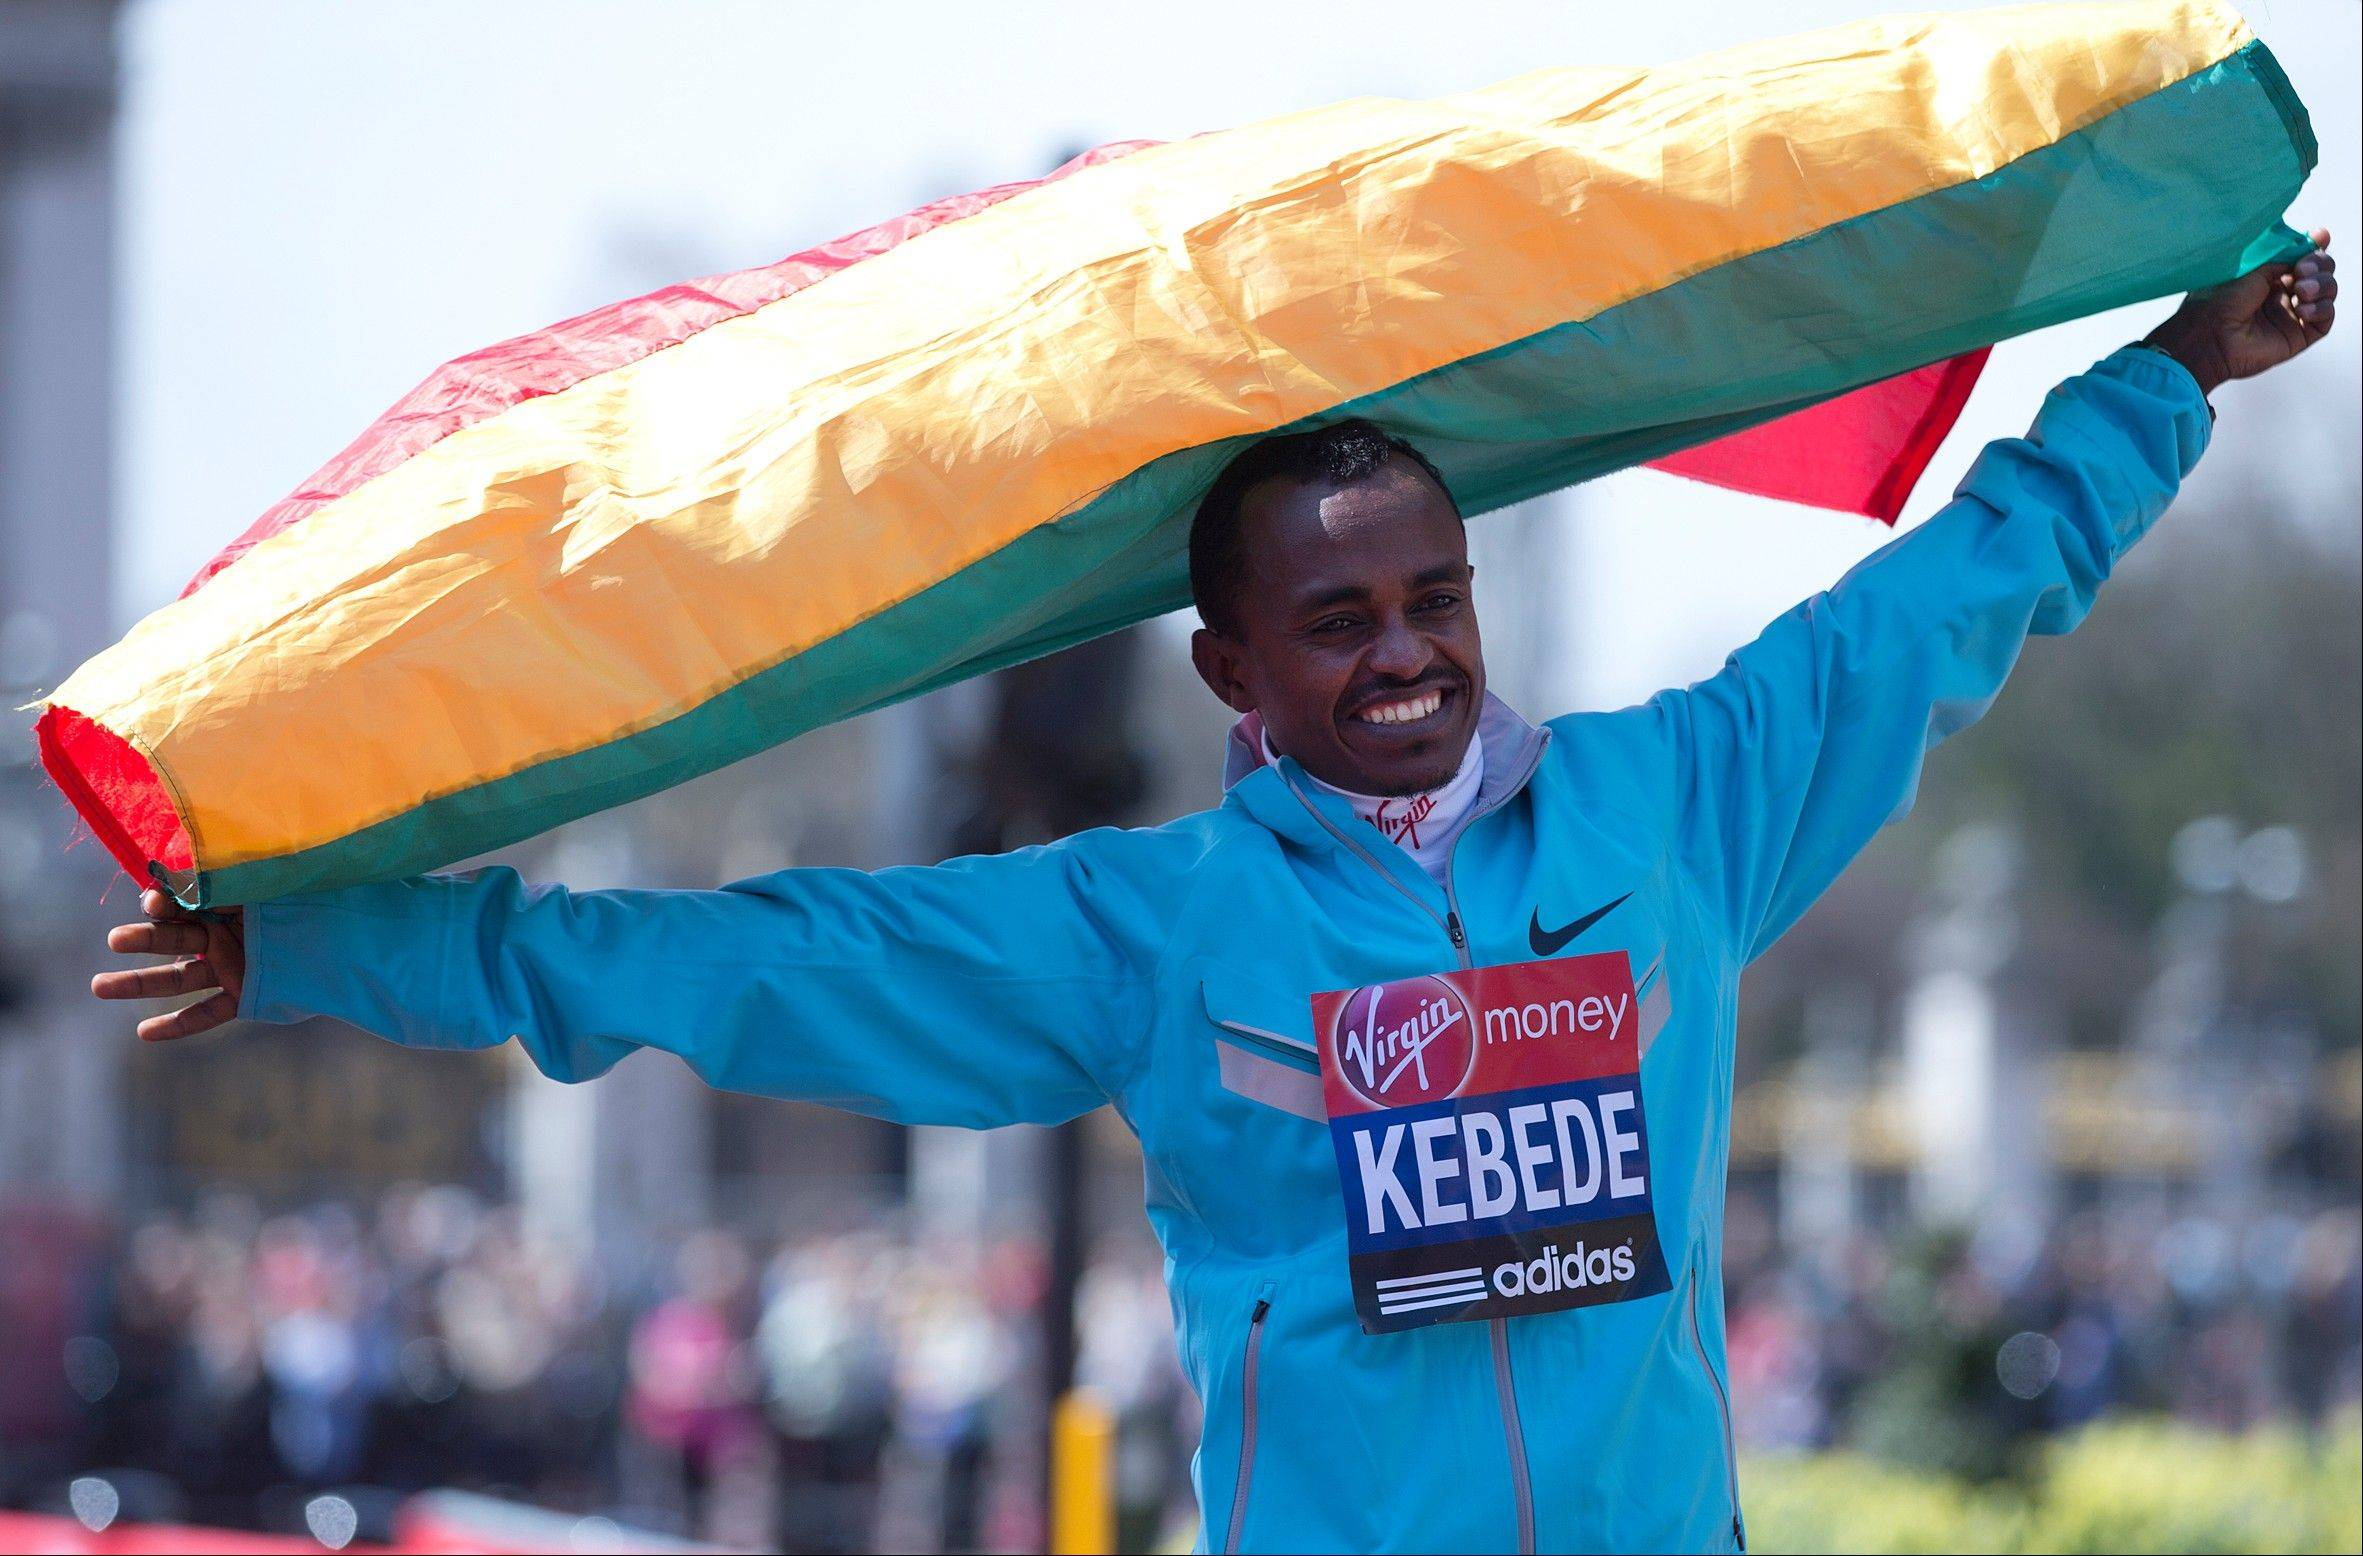 Tsegaye Kebede of Ethiopia, winner of the men's London Marathon, holds his country's national flag as he poses for photographs after the medal ceremony on Sunday. A defiant, festive mood prevailed Sunday as the London Marathon began despite concerns raised by the bomb attacks on the Boston Marathon six days ago.